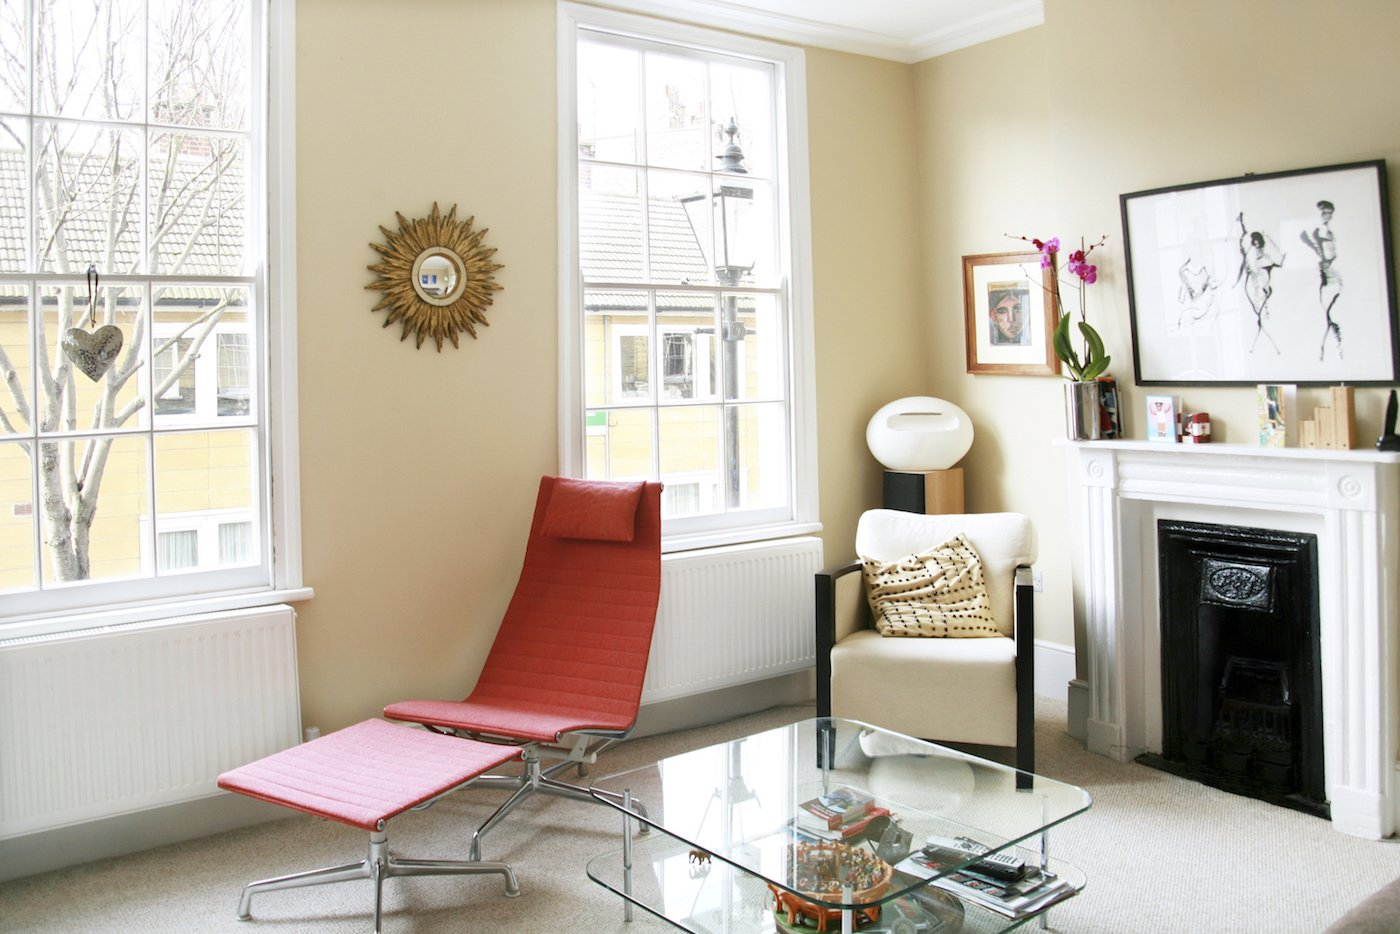 Angel Islington EC1 Listed house extension Upper floor internal views Residential renovations in London   Home ideas